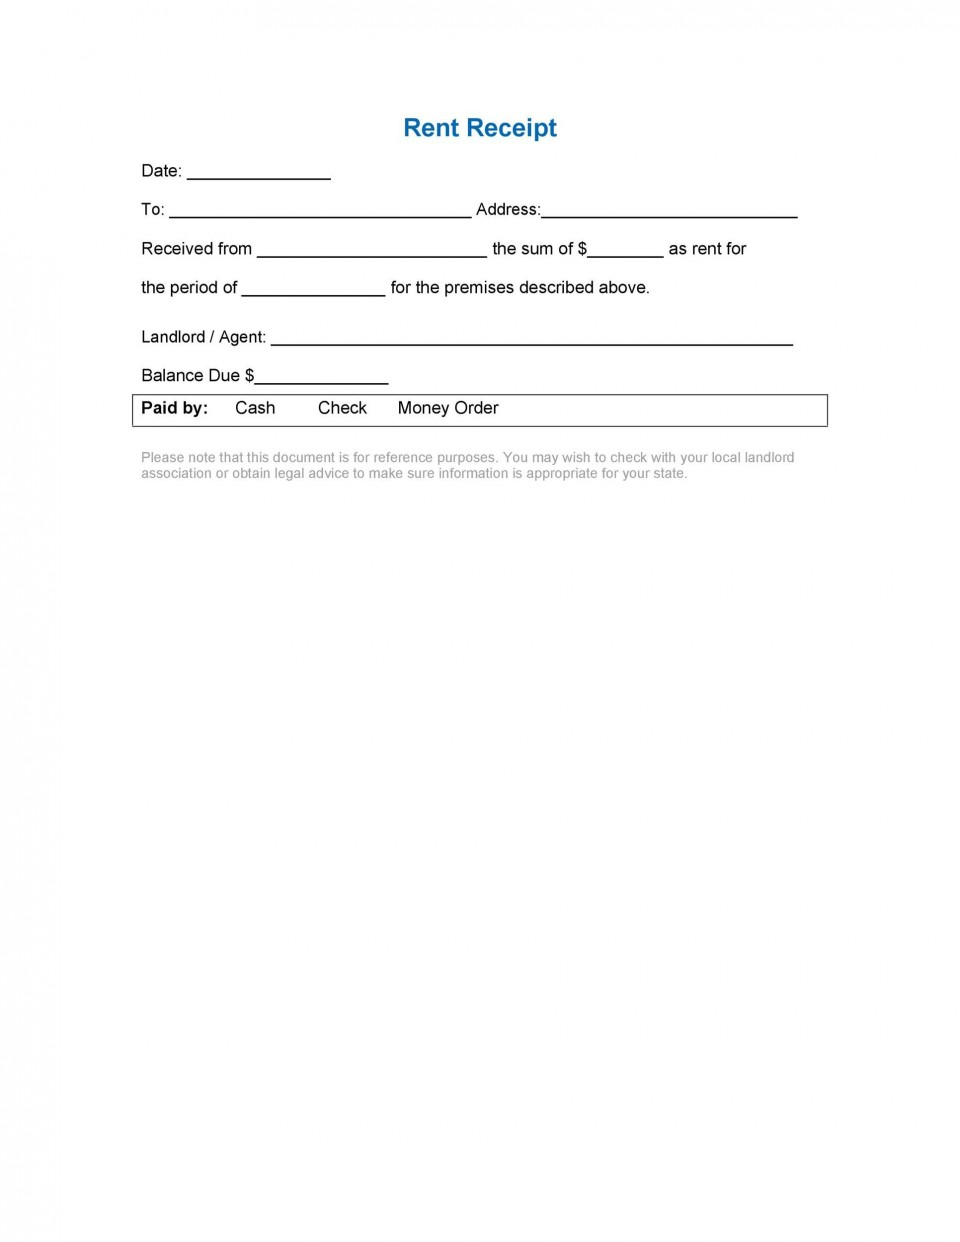 003 Fantastic Rent Receipt Sample Doc High Resolution  Template India House Format Free Download960